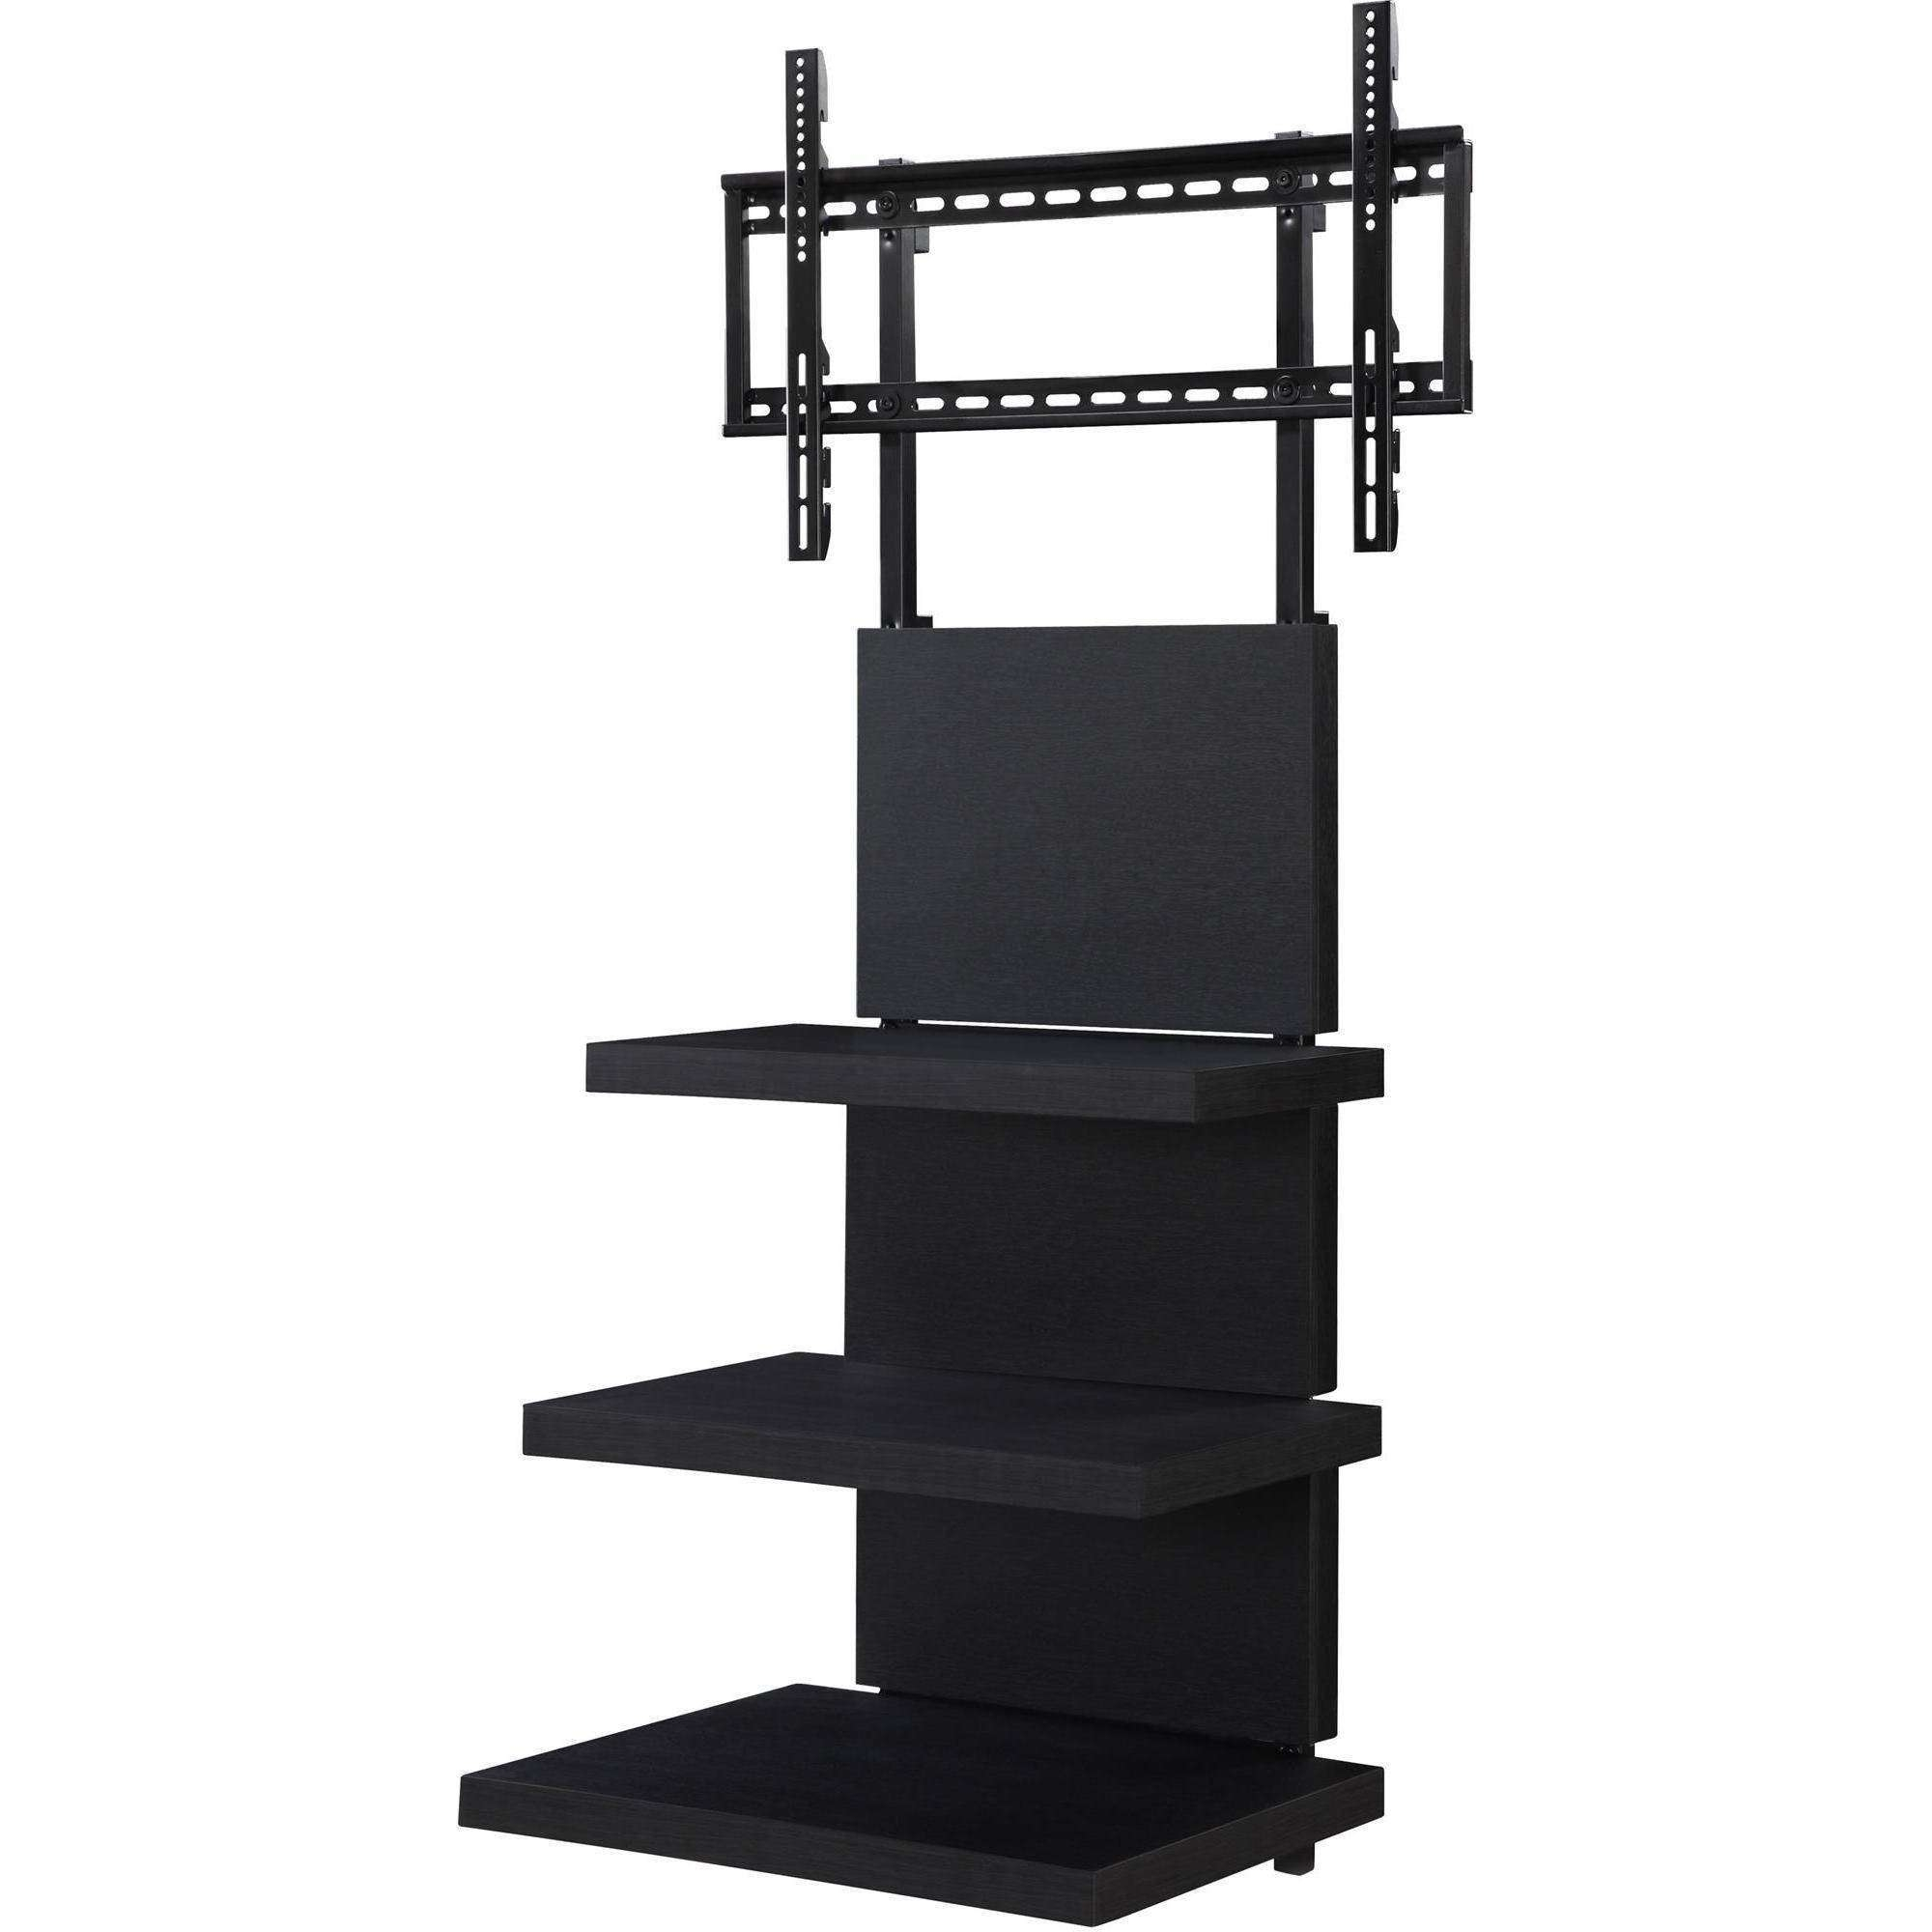 Wall Units: Walmart Tv Stand With Mount Ideas Tv Mount Wall, Flat Intended For 65 Inch Tv Stands With Integrated Mount (View 14 of 15)